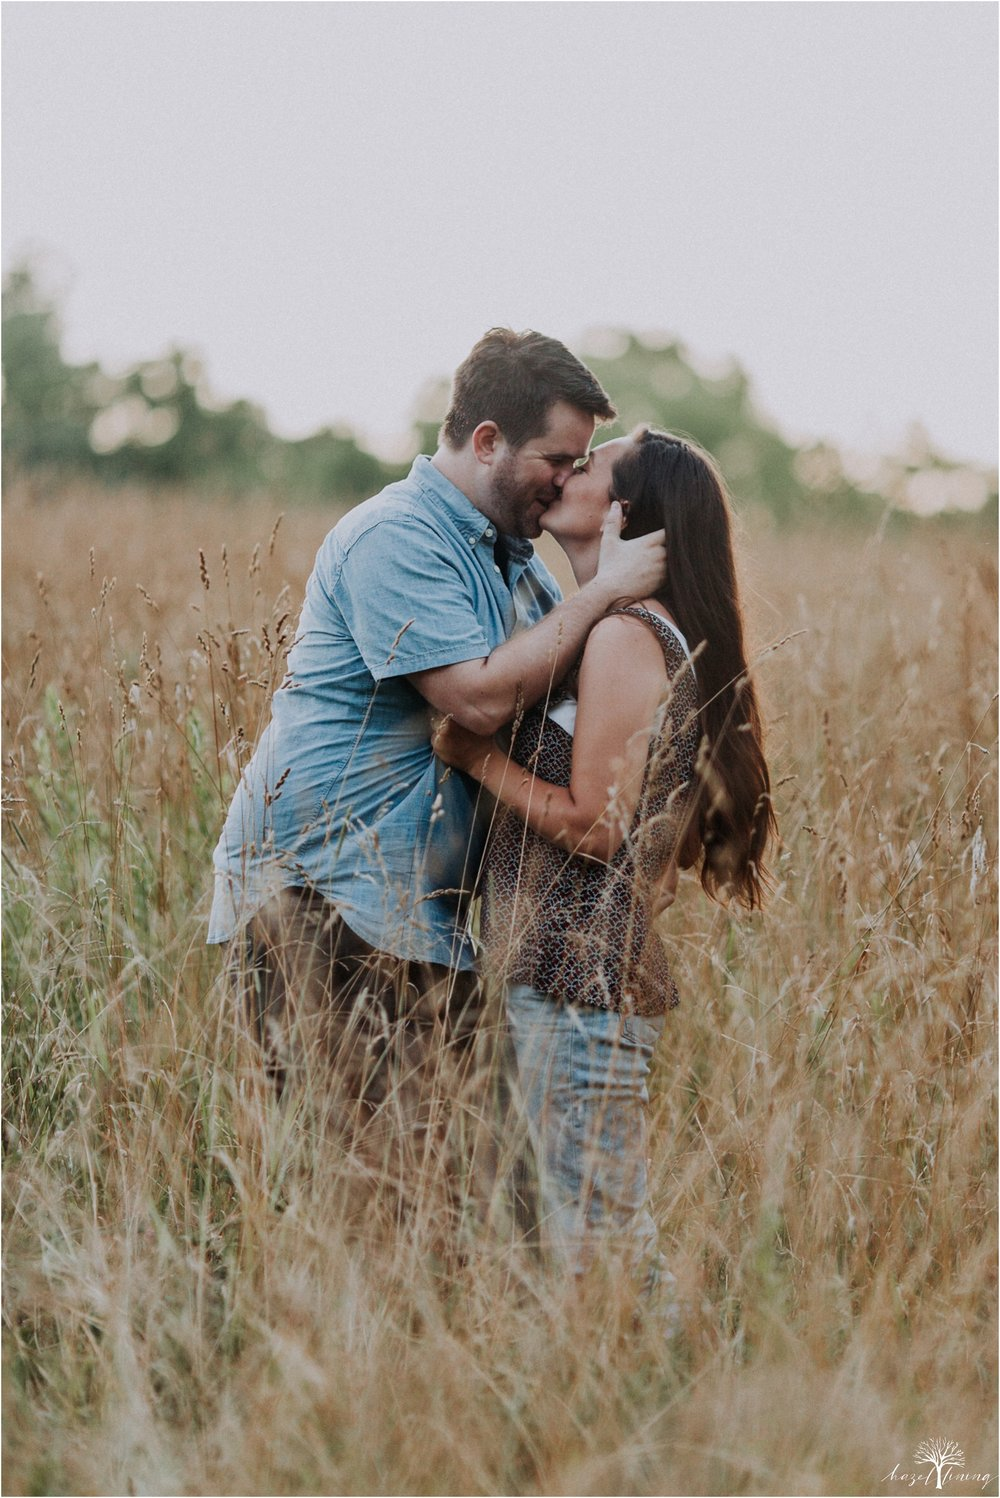 kelsey-delaney-kevin-jordan-tyler-state-park-newtown-pennsylvania-golden-hour-sunset-engagement-session-hazel-lining-travel-wedding-elopement-photography_0123-1.jpg